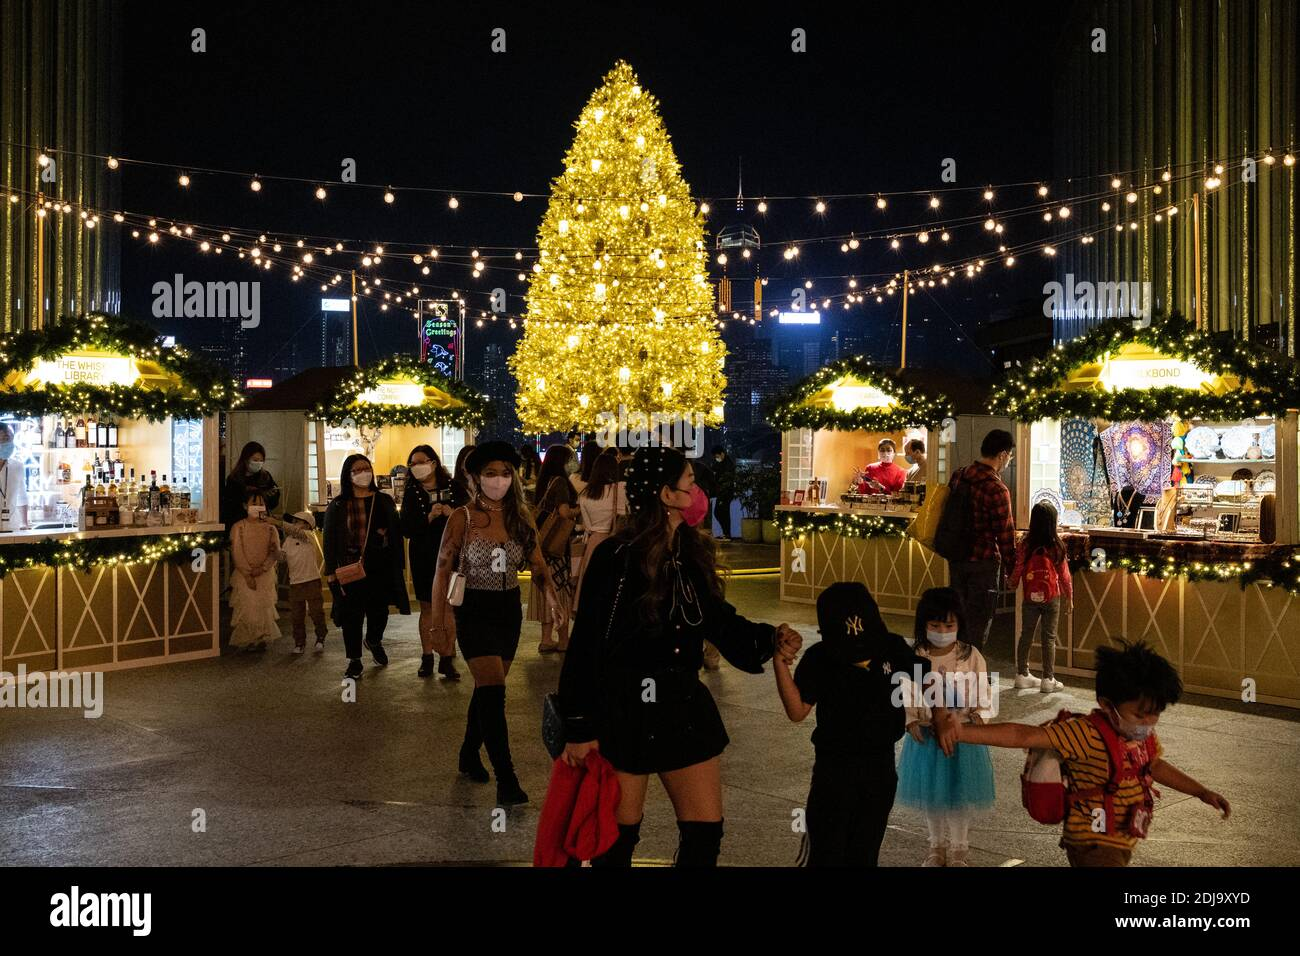 Tyrone Mall Christmas Day 2021 Christmas Decorations Shopping Mall Hong High Resolution Stock Photography And Images Alamy